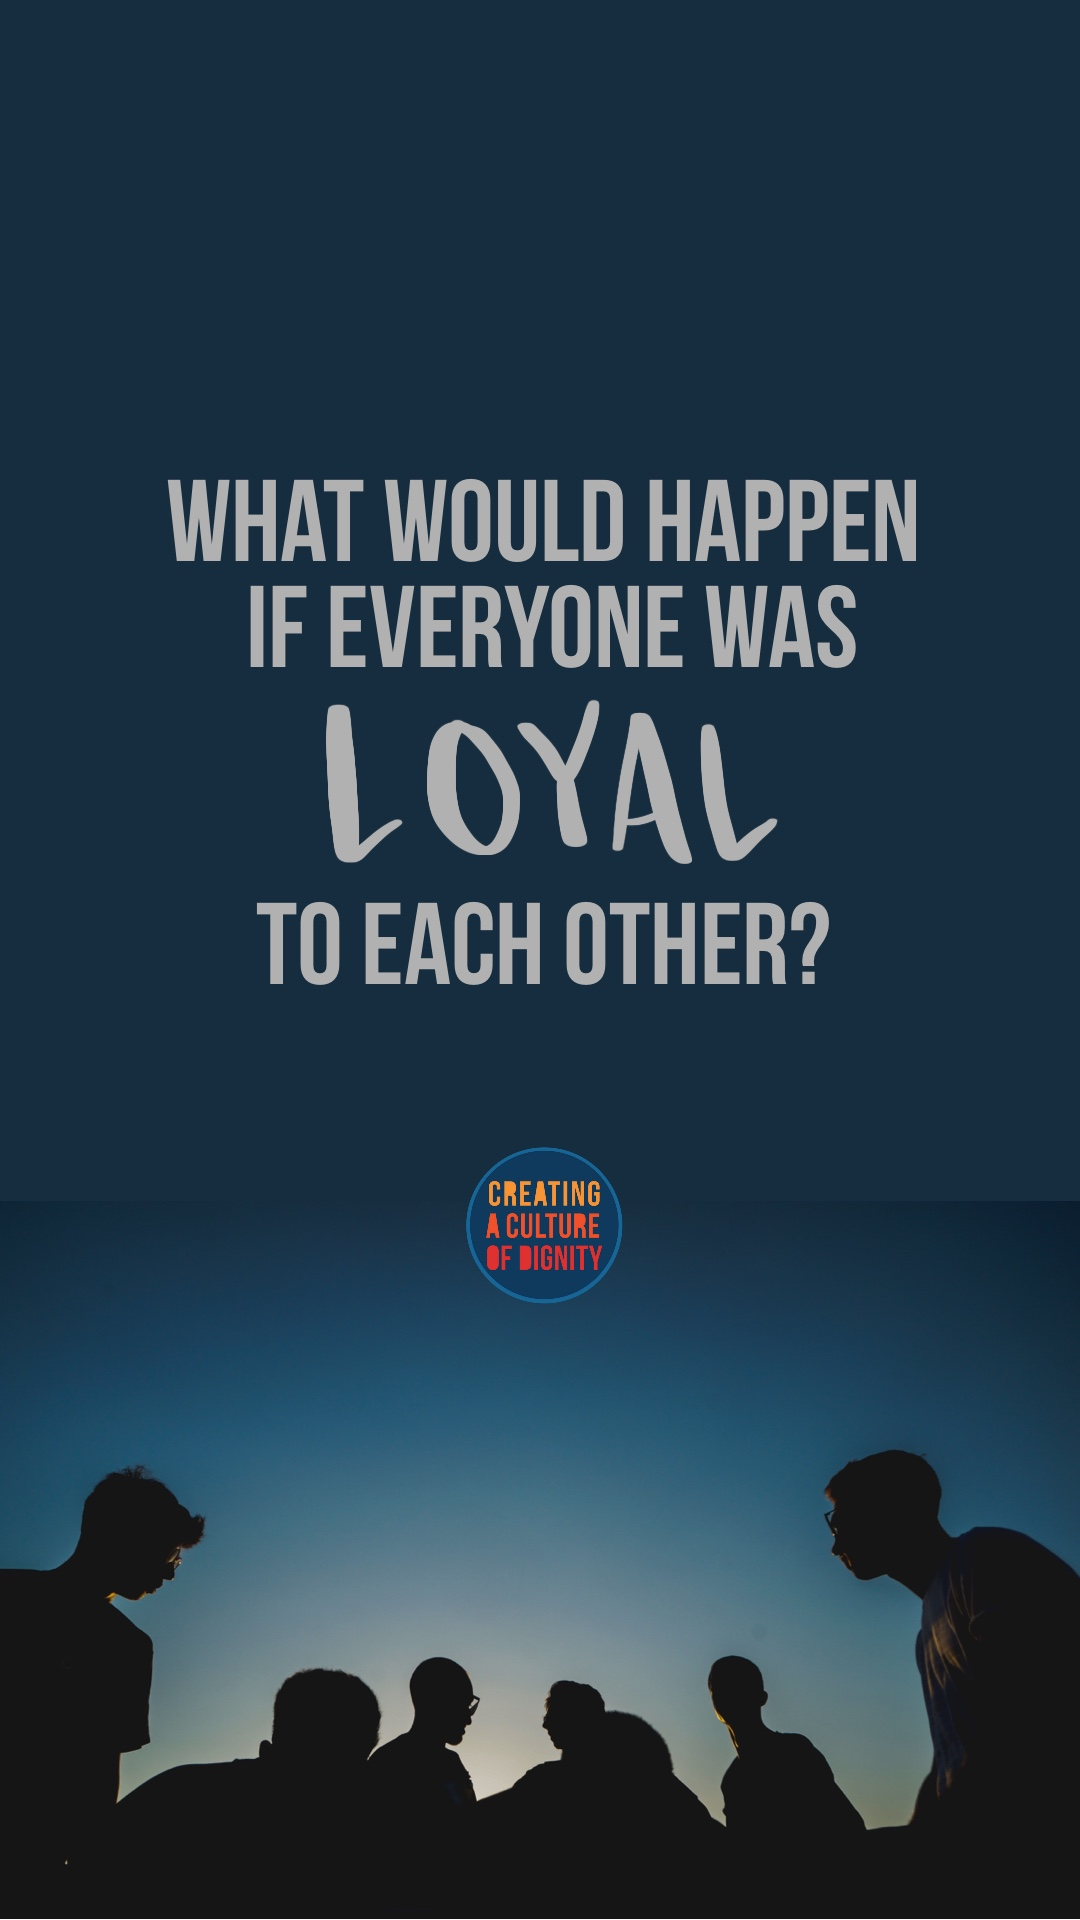 What Would Happen If Everyone Was Loyal To Each Other?